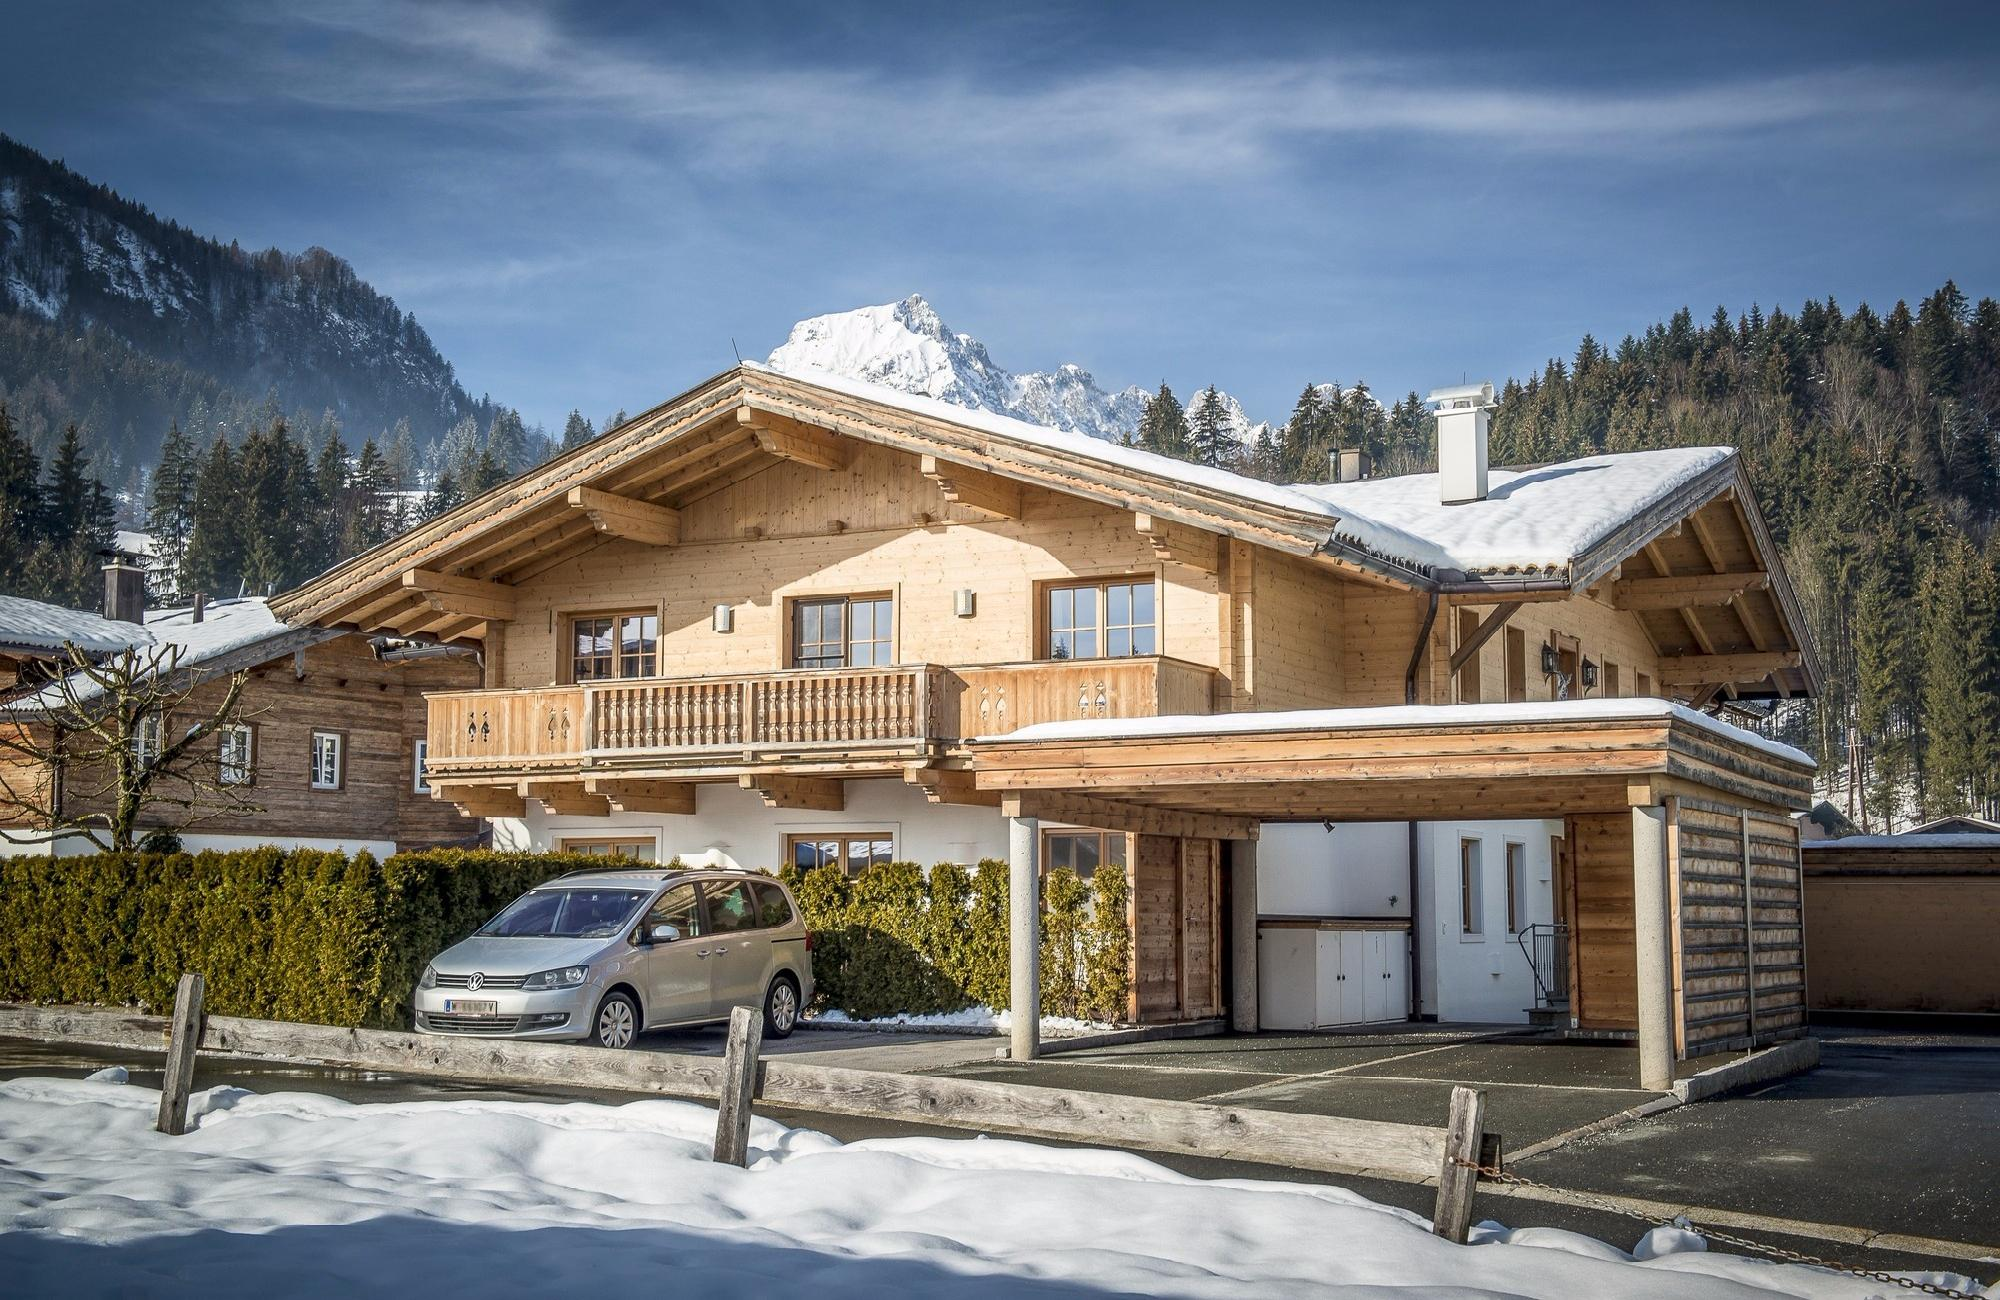 Garden maisonette close to St. Johann - Sold - Austria - Tirol